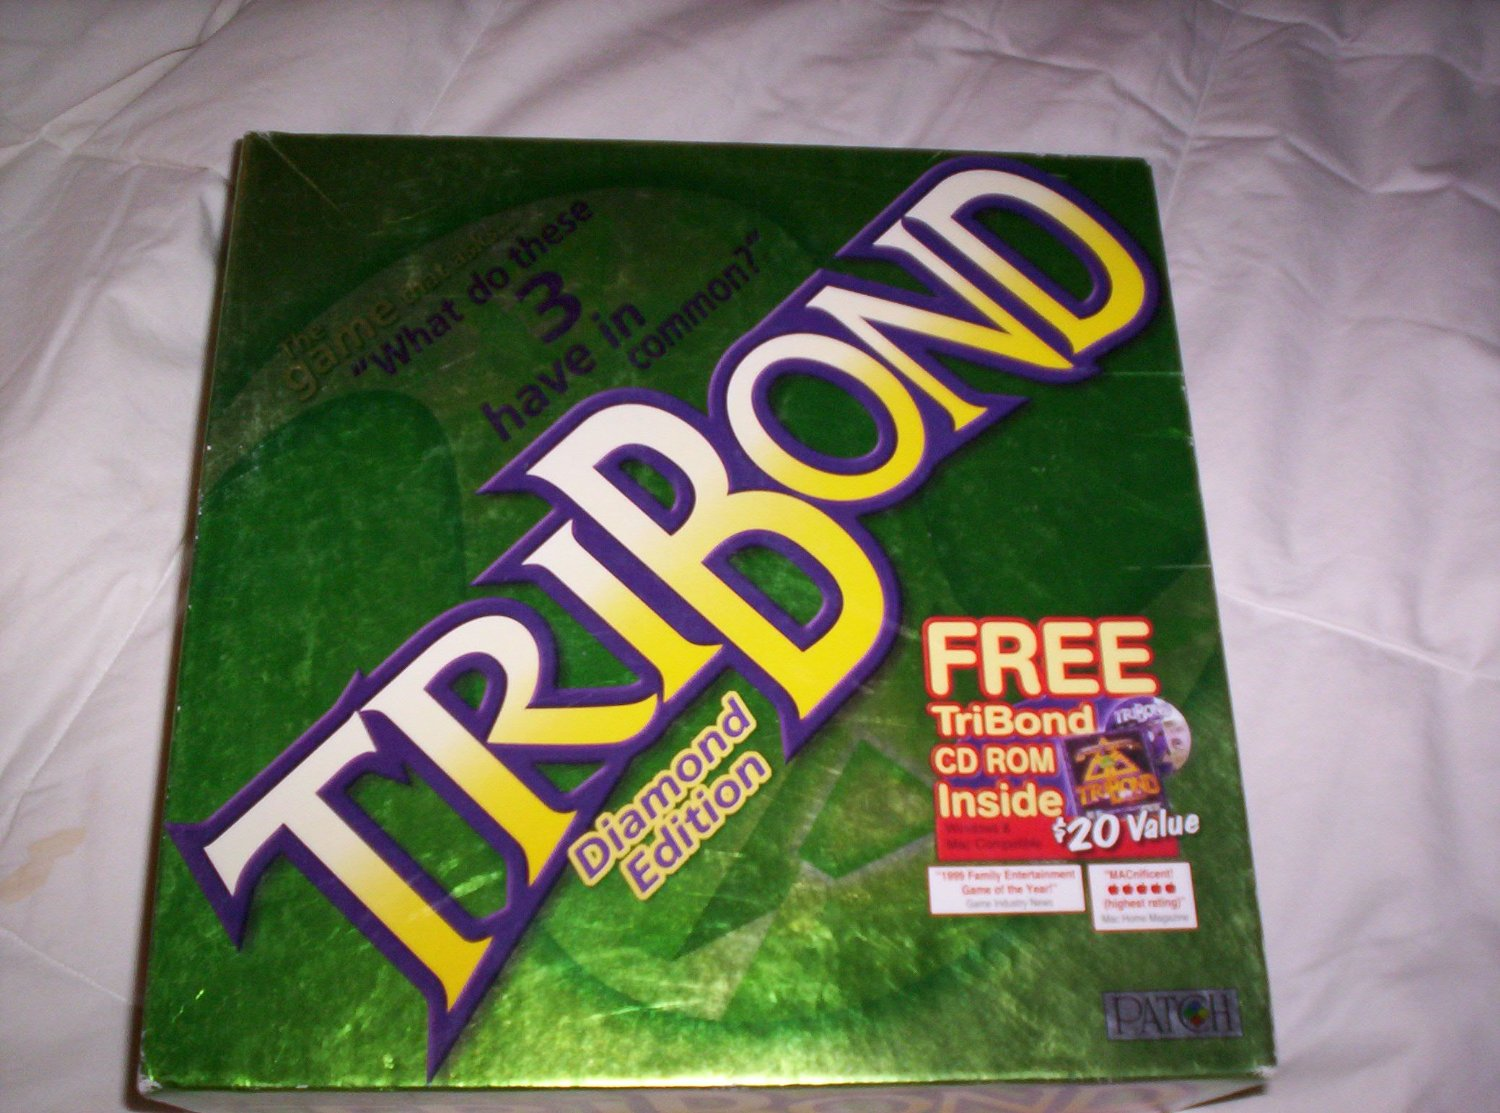 TriBond: Diamond Edition